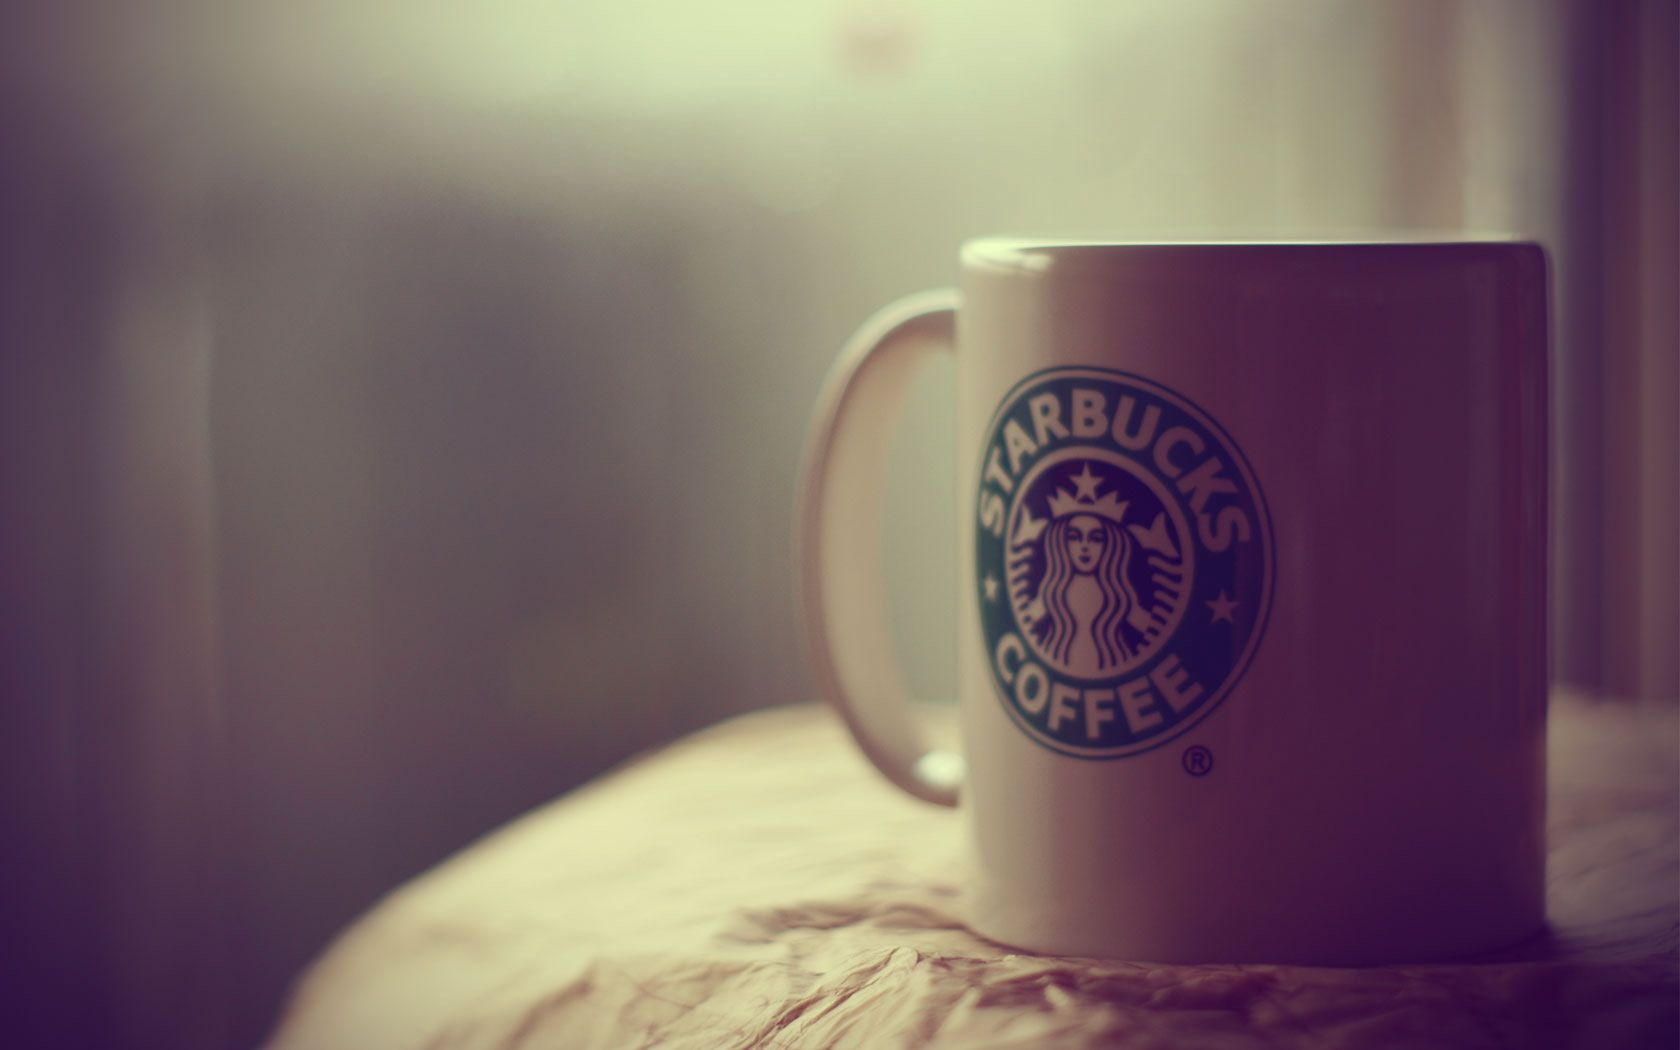 Starbucks Coffee Mug Computer Wallpaper 53517 1680x1050 px ...